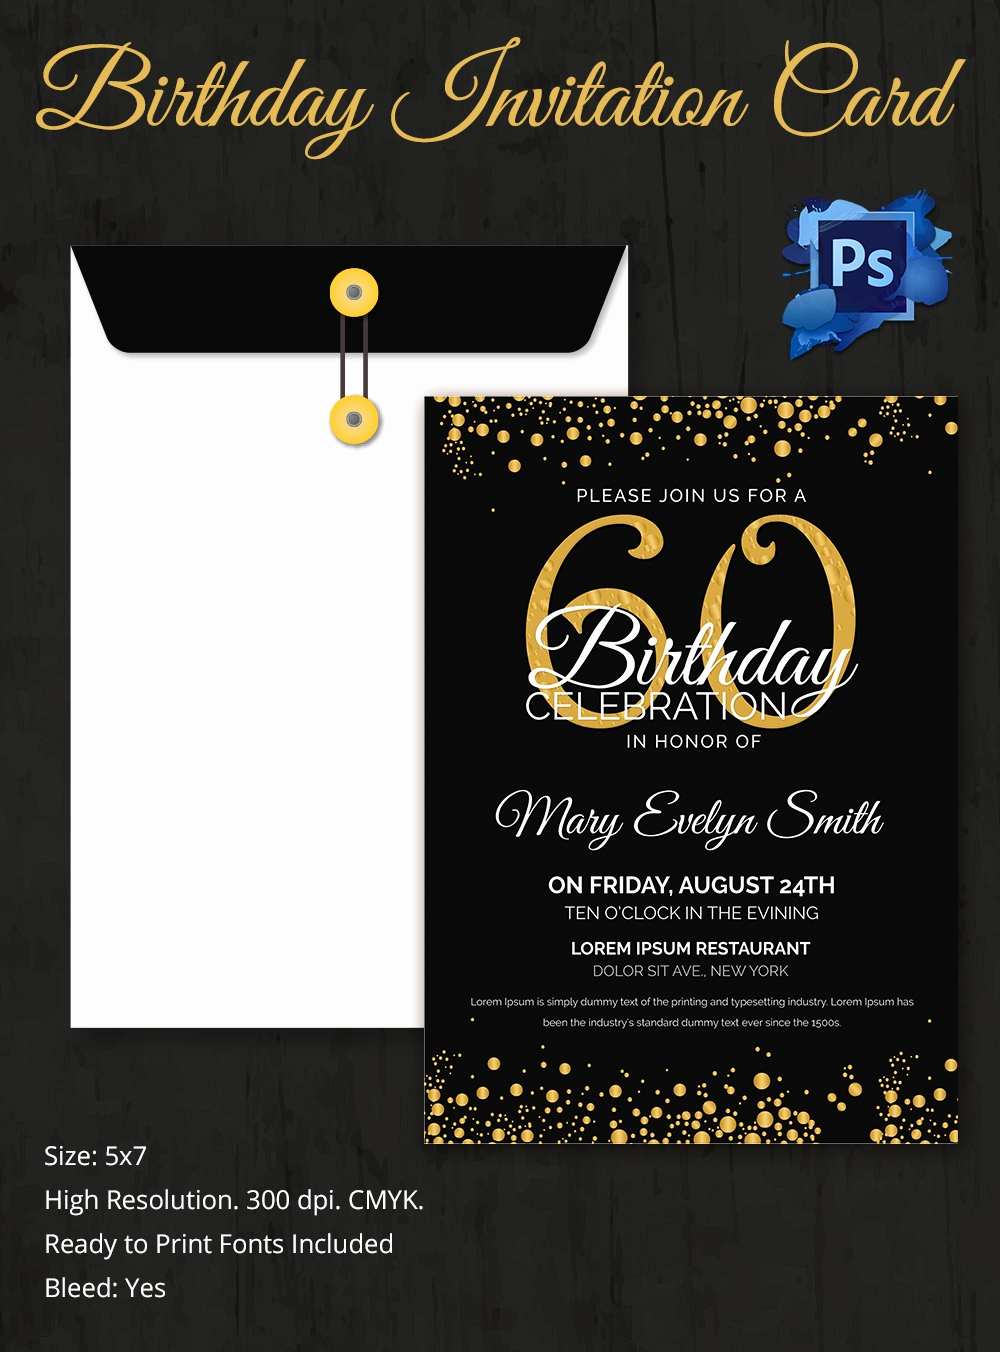 Birthday Invitation Templates Word New Birthday Invitation Template 32 Free Word Pdf Psd Ai